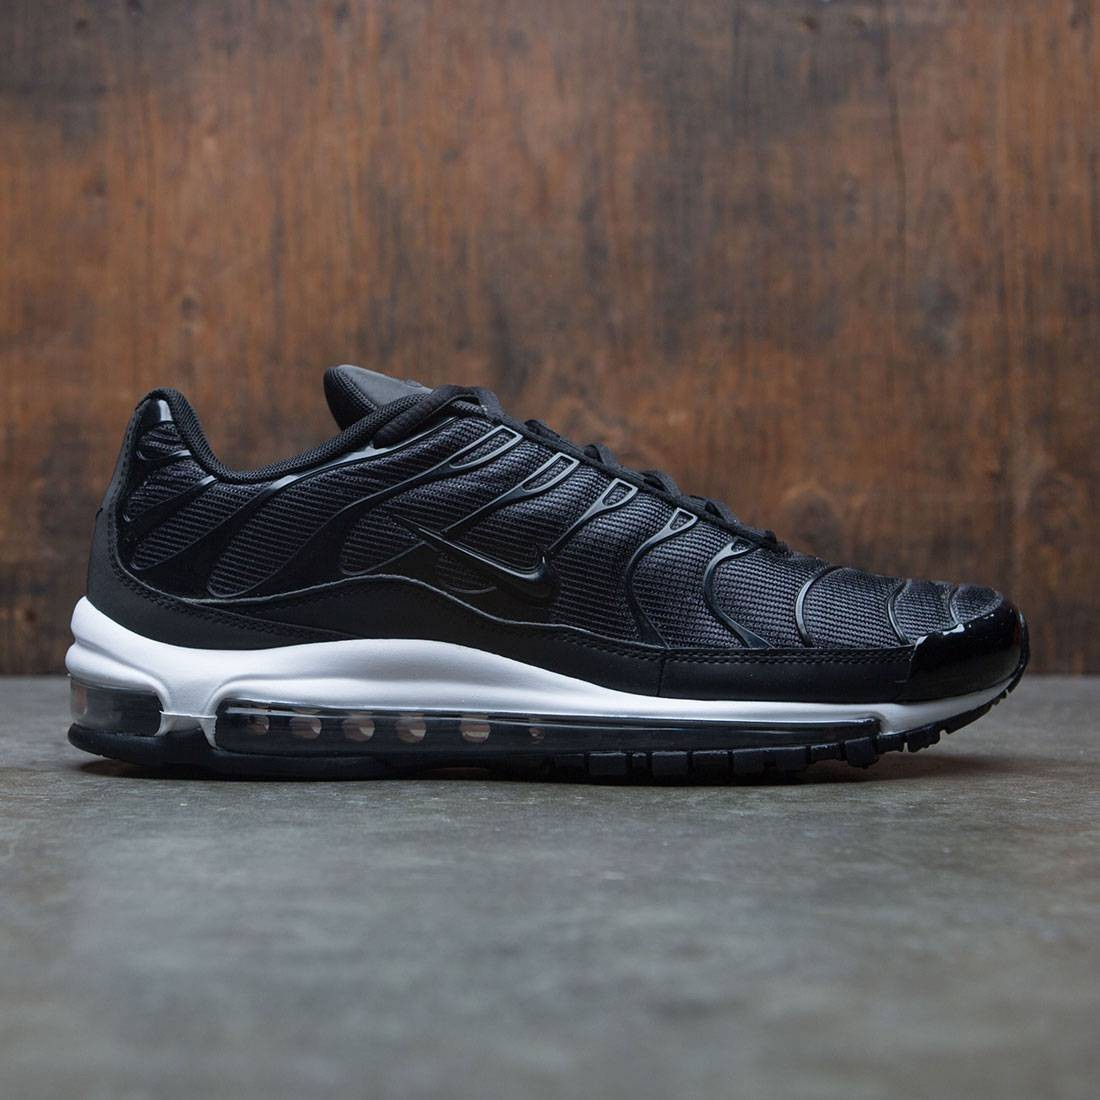 16c828d8c099 nike men air max 97 plus qs black anthracite white